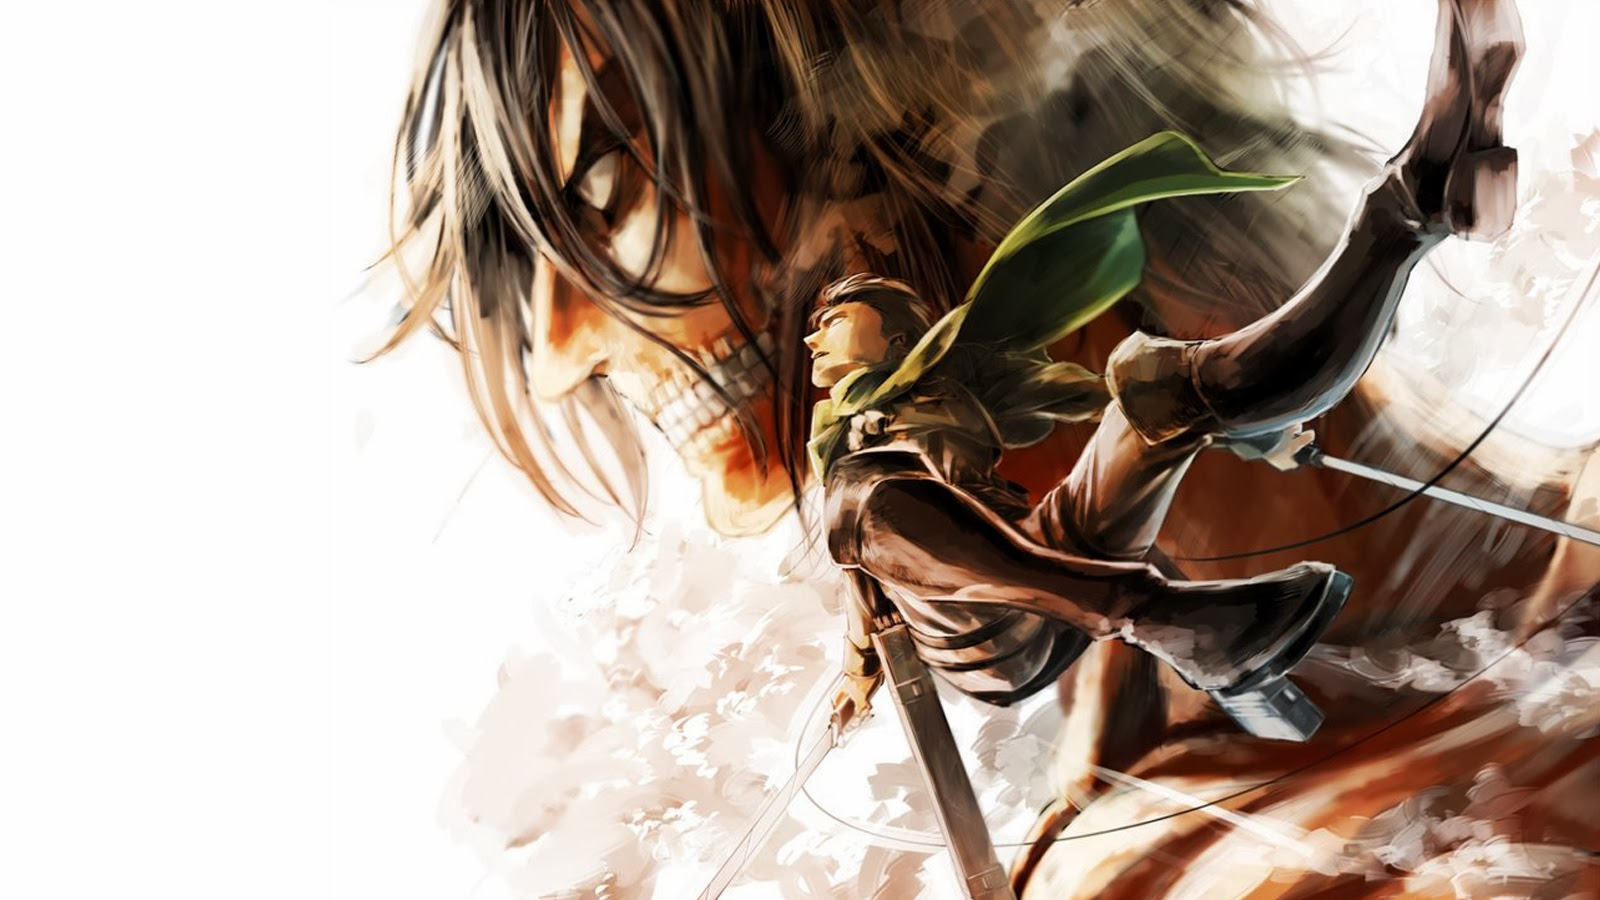 levi rogue titan eren jaeger yeager attack on titan shingeki no kyojin 1600x900